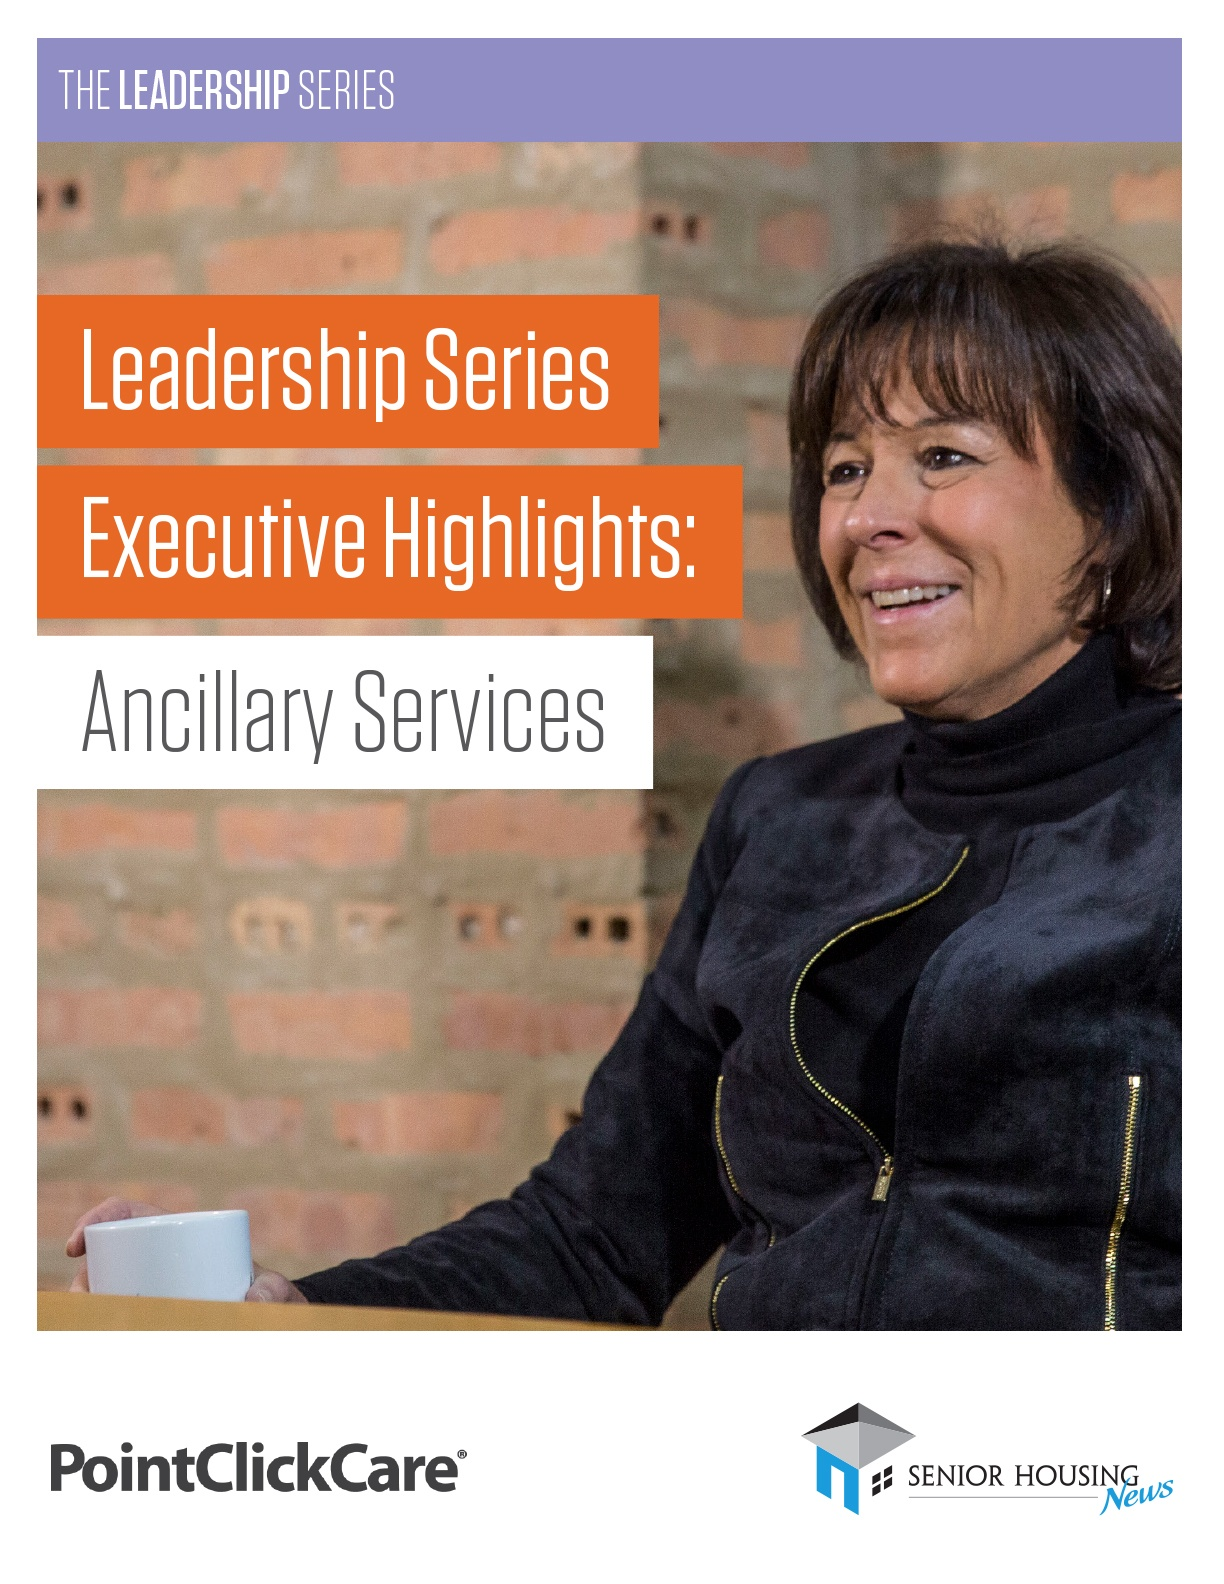 The Leadership Series Executive Highlights: Why Senior Living Needs Ancillary Services